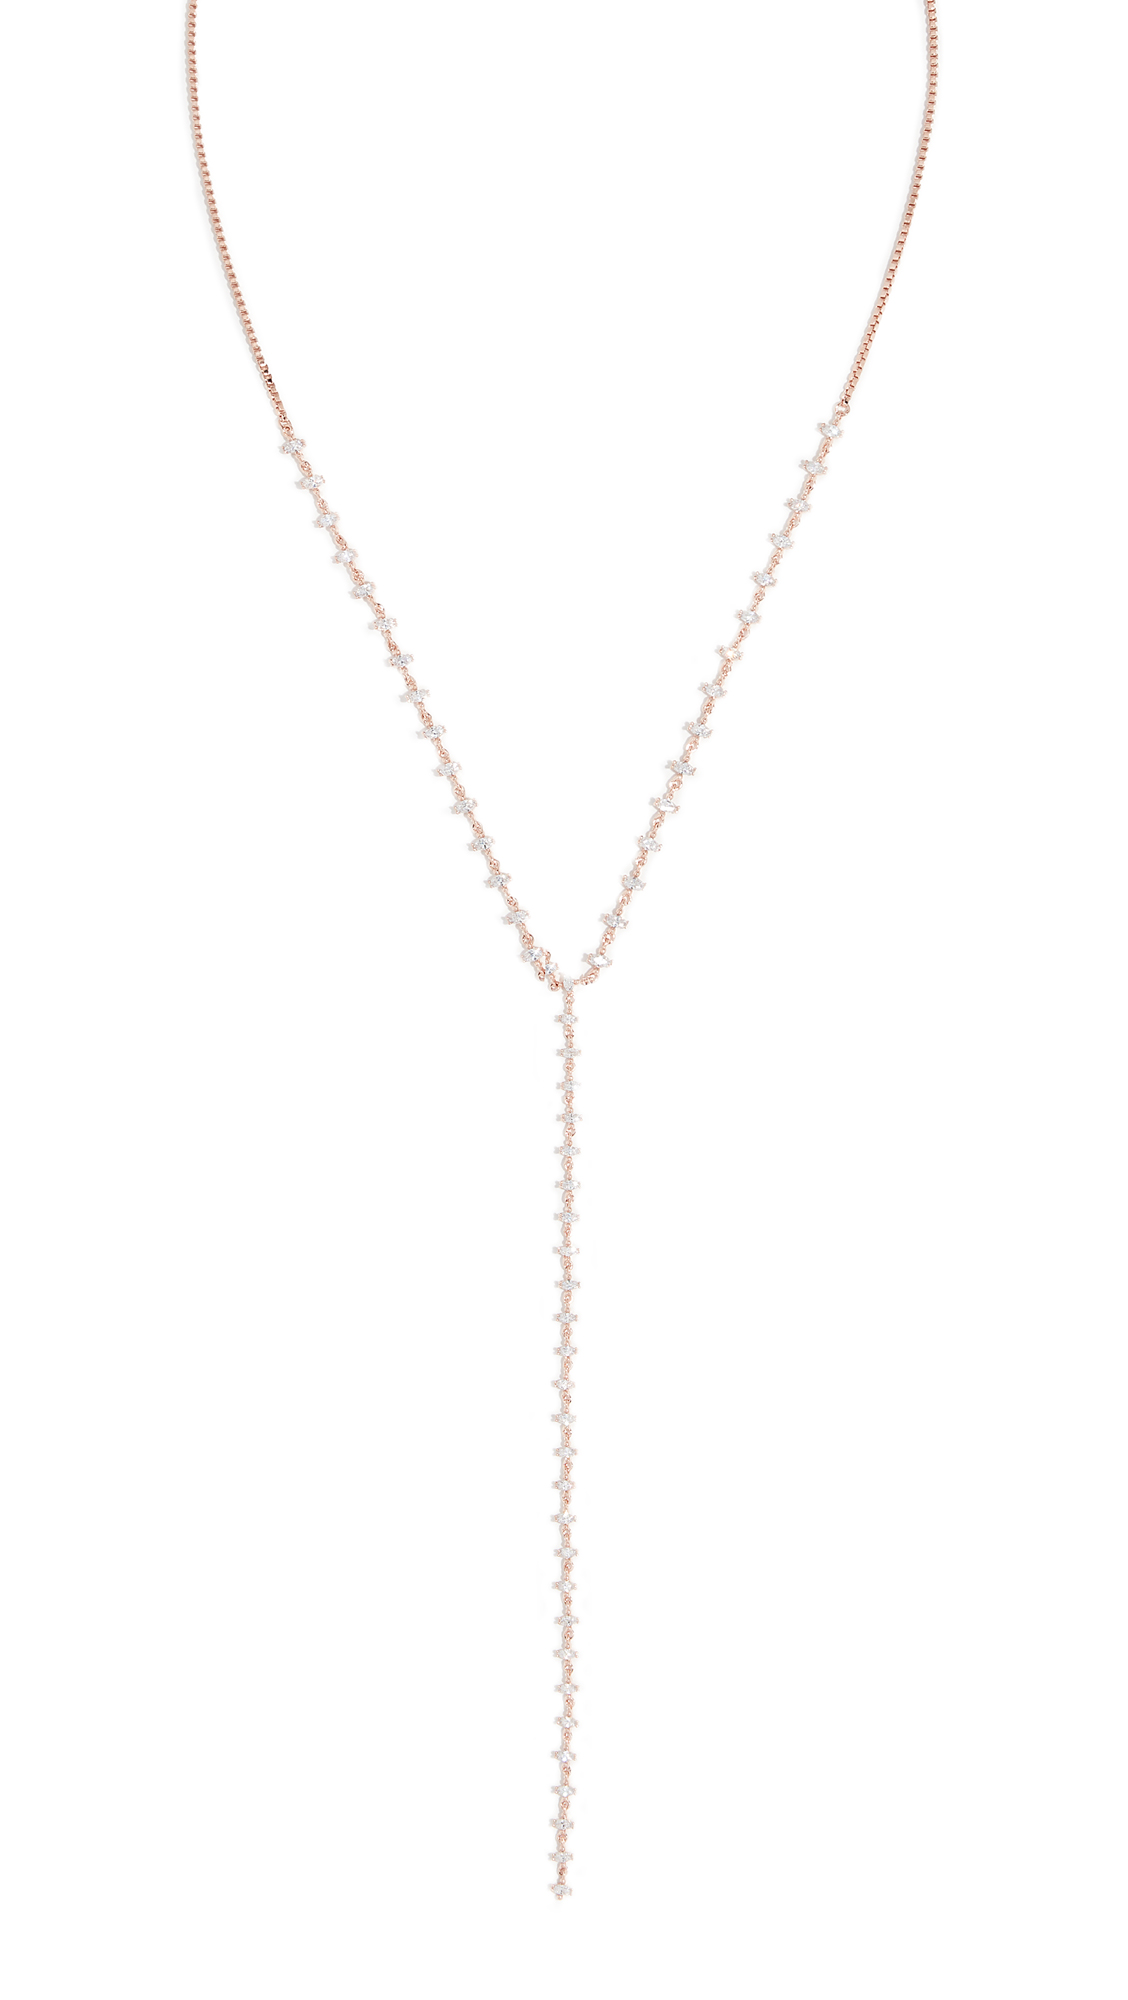 THEIA JEWELRY Harper Lariat Necklace in Rose Gold